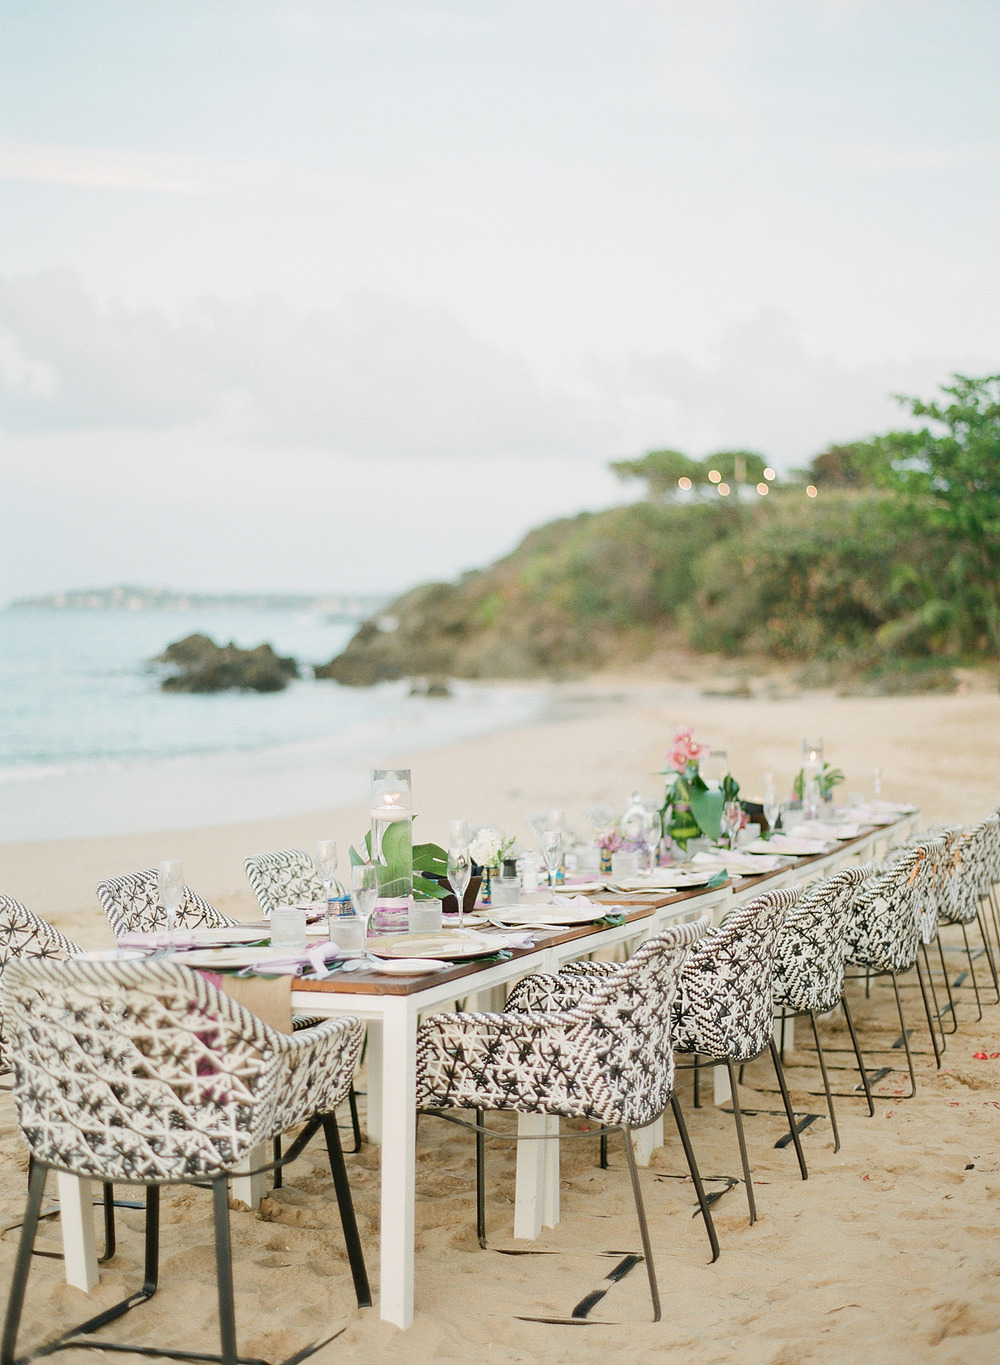 a wedding reception on the beach at this modern wedding in vieques island puerto rico at the w hotel vieques island wedding where Destination Wedding Photographer Lexia Frank photographed a modern wedding on film, as she is a film photographer for weddings